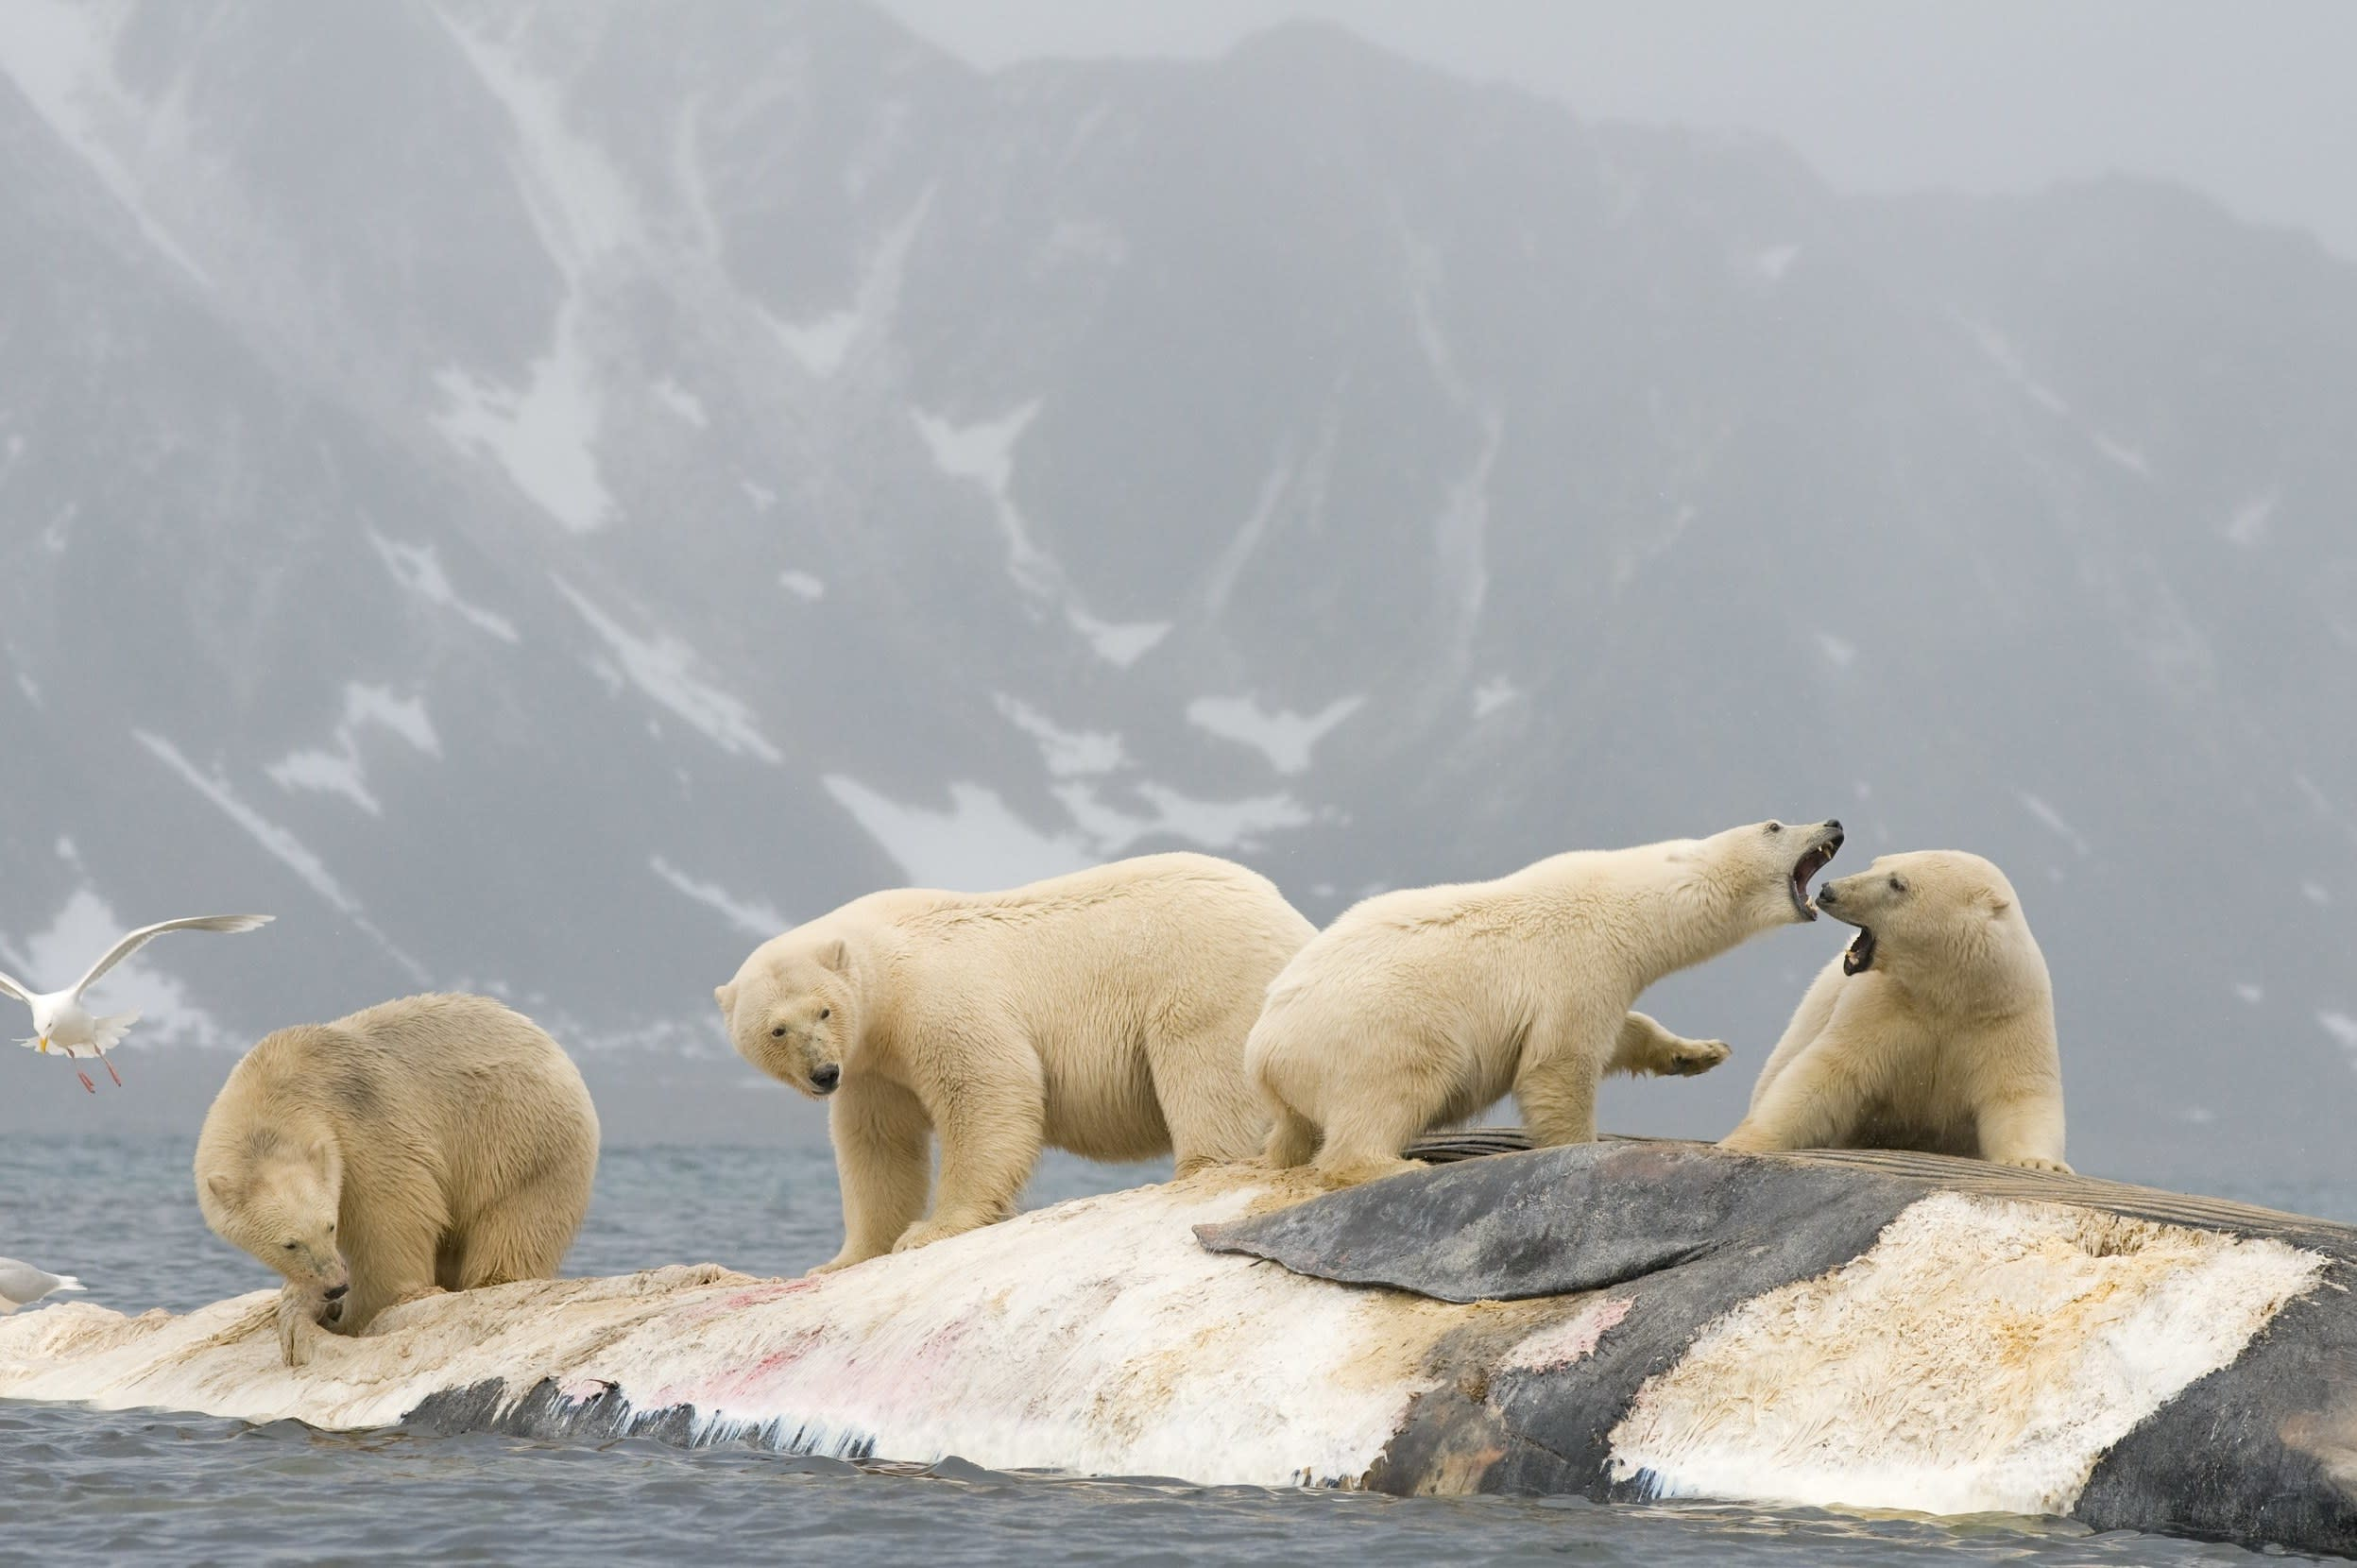 """<p>There are approximately 3,000 polar bears and just 2,642 people in the <a href=""""http://travel.aol.co.uk/guides/norway/"""" target=""""_blank"""">Svalbard</a> archipelago. A large number of polar bears are found on the surrounding islands east of Spitsbergen, yet you should be prepared to encounter one anywhere in Svalbard. As the world's largest land carnivores they are beautiful but dangerous and human encounters often have a fatal outcome. There are polar bear watching cruises which allow you to see the animals from a distance.</p>"""